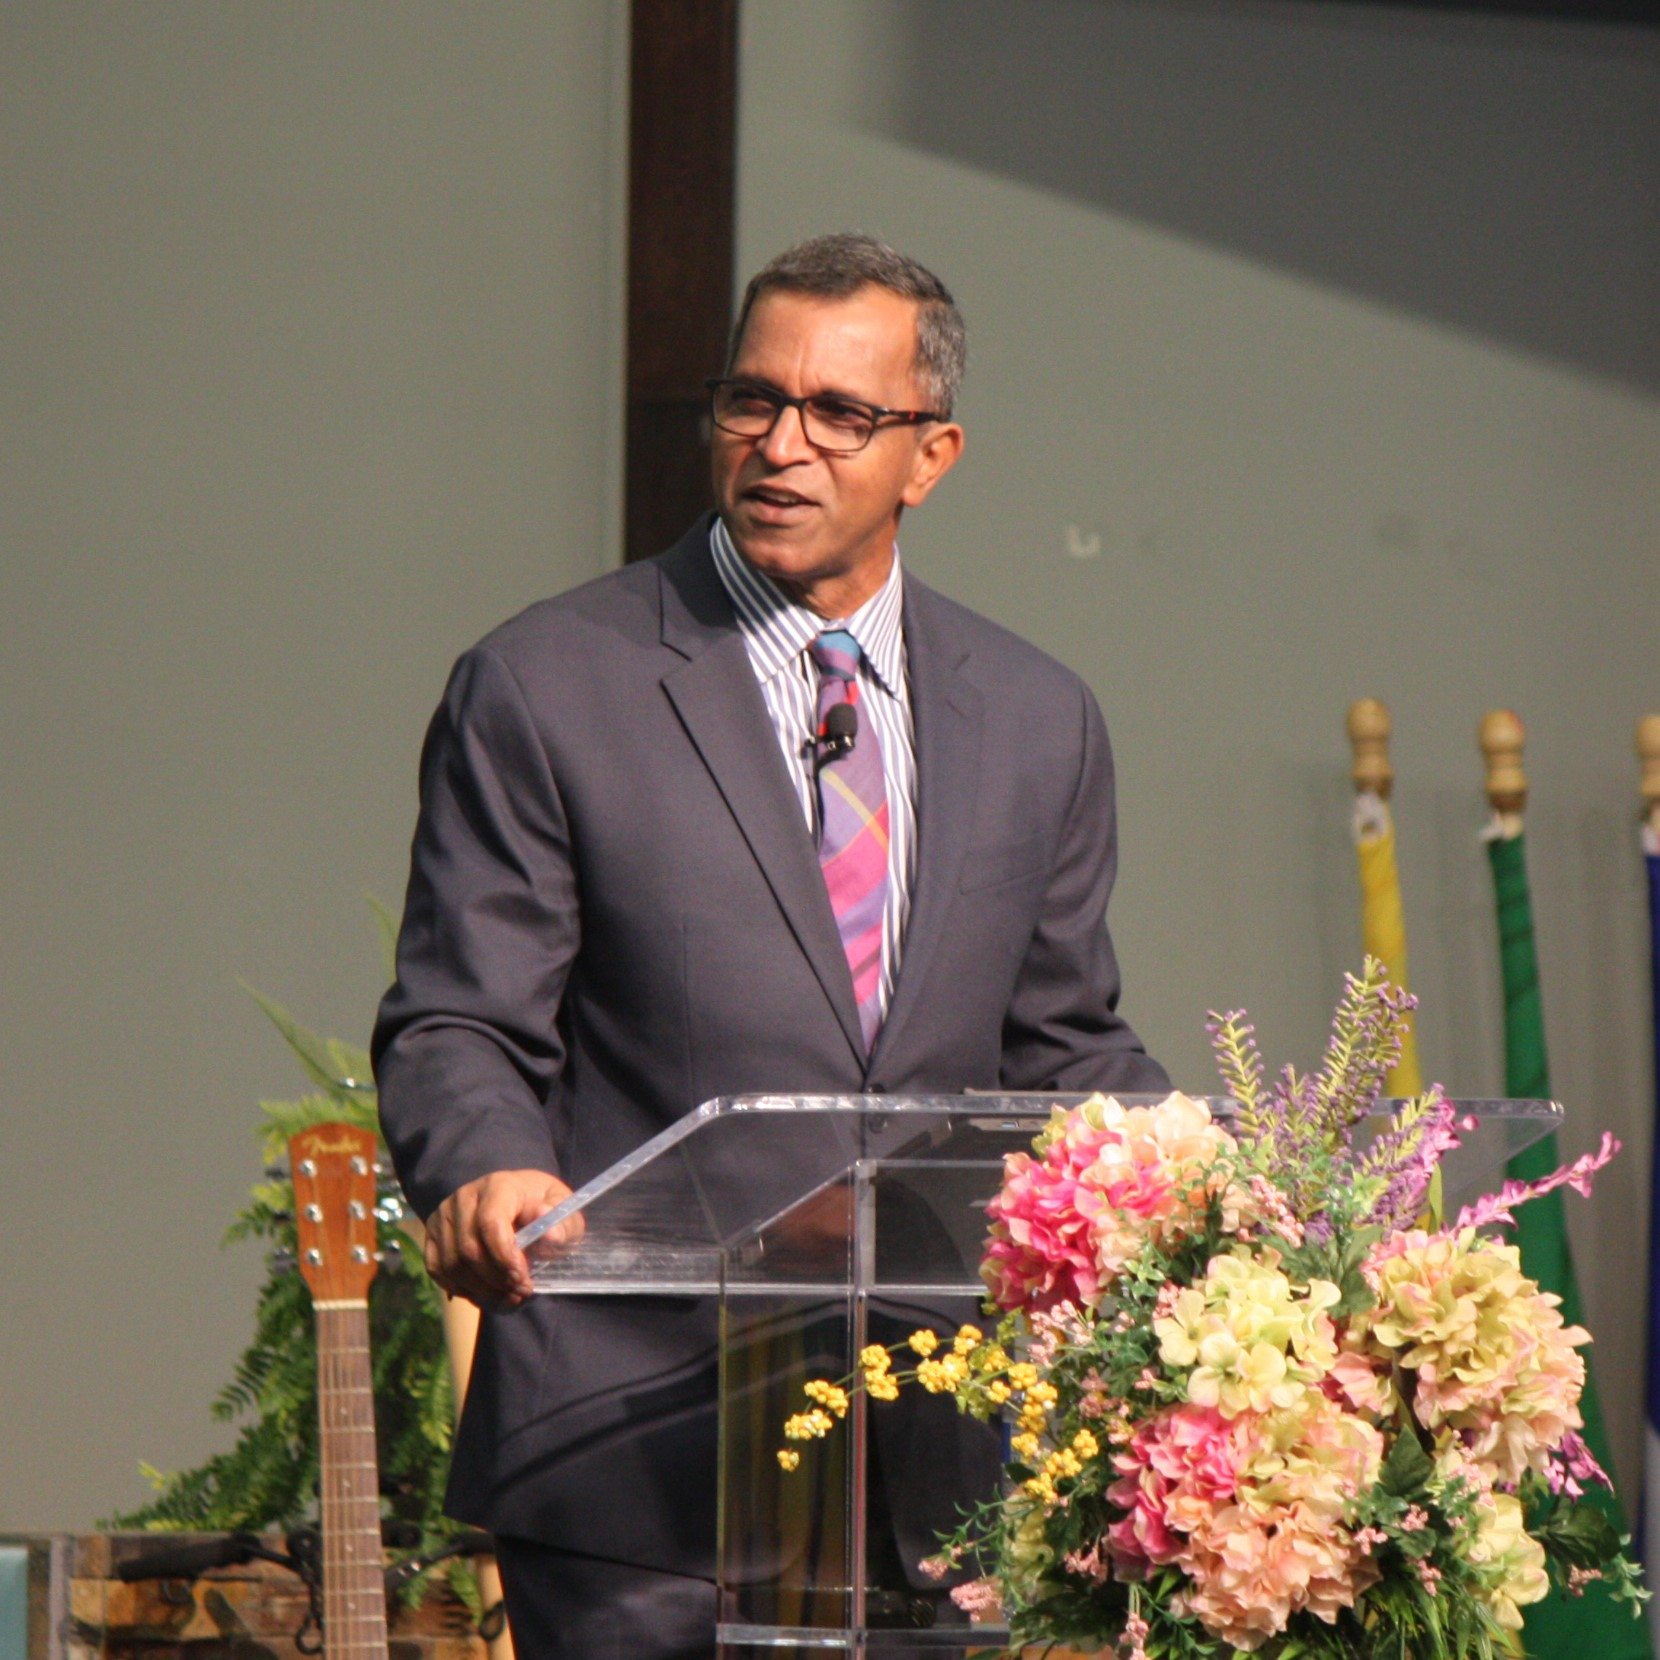 Pastor Sam Chetty